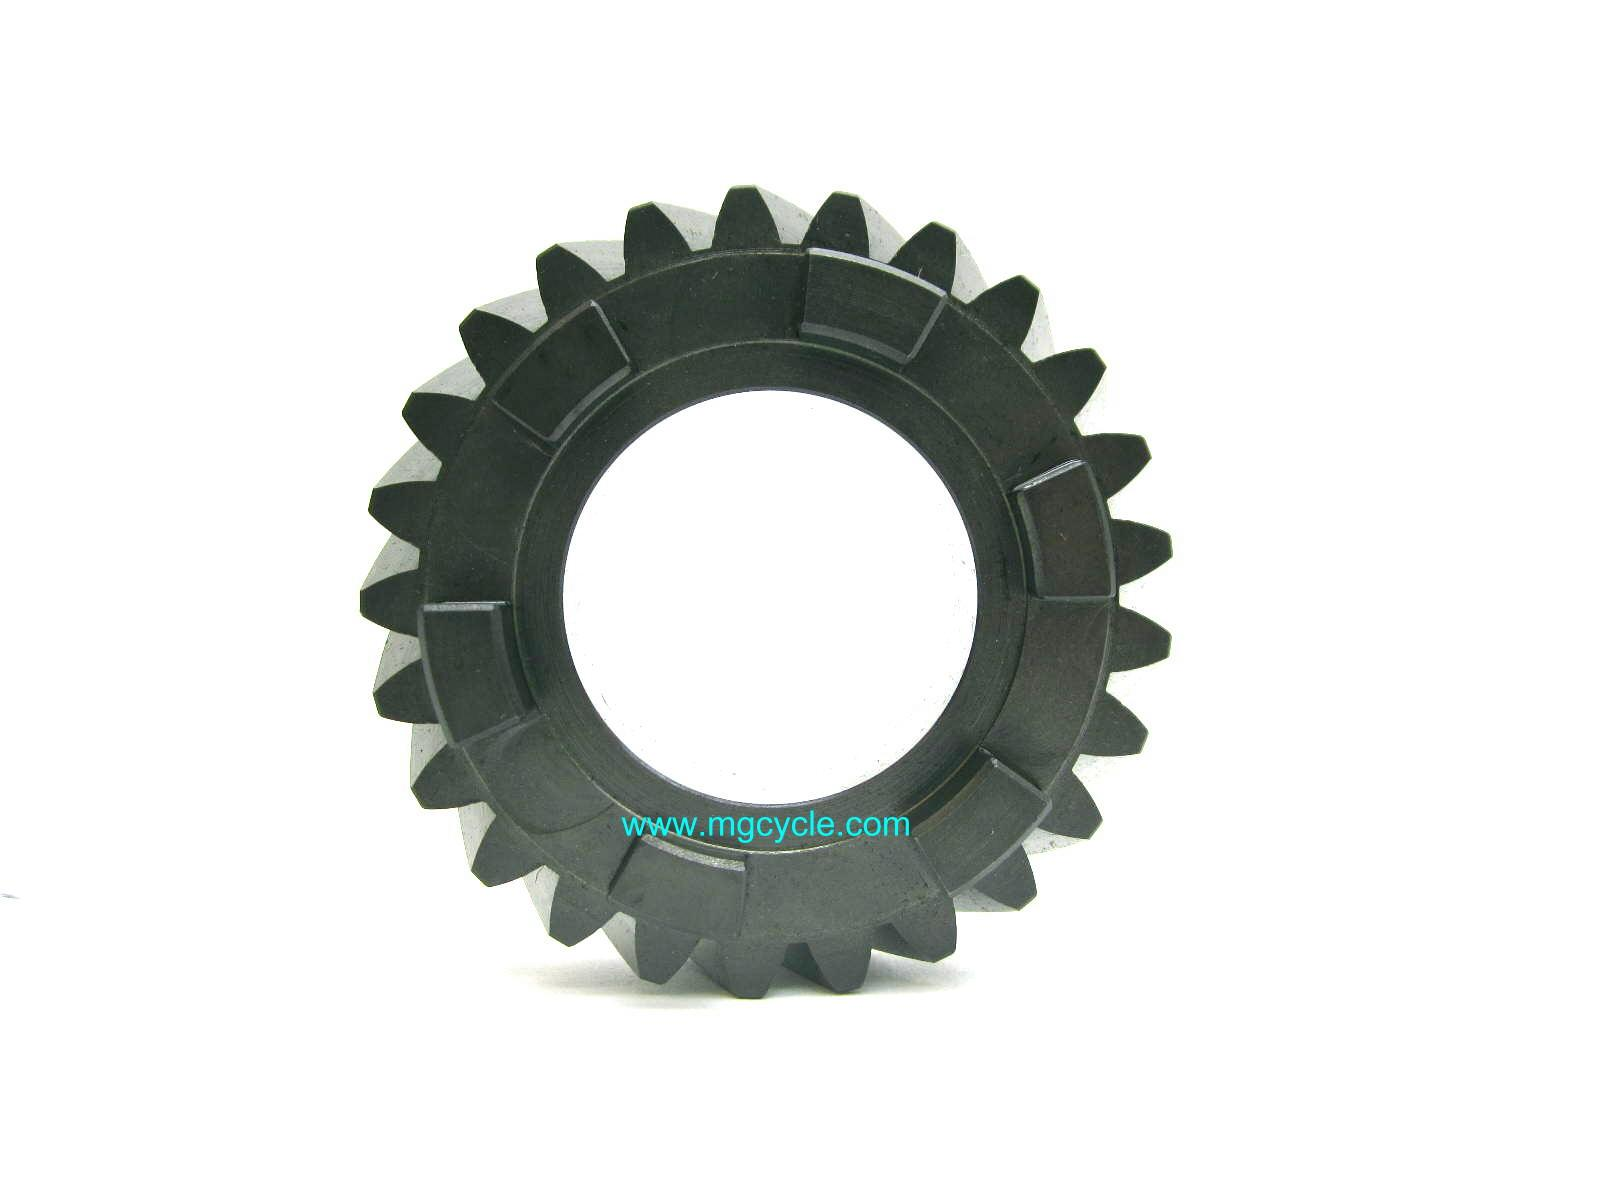 2nd gear 25 tooth GU14214510